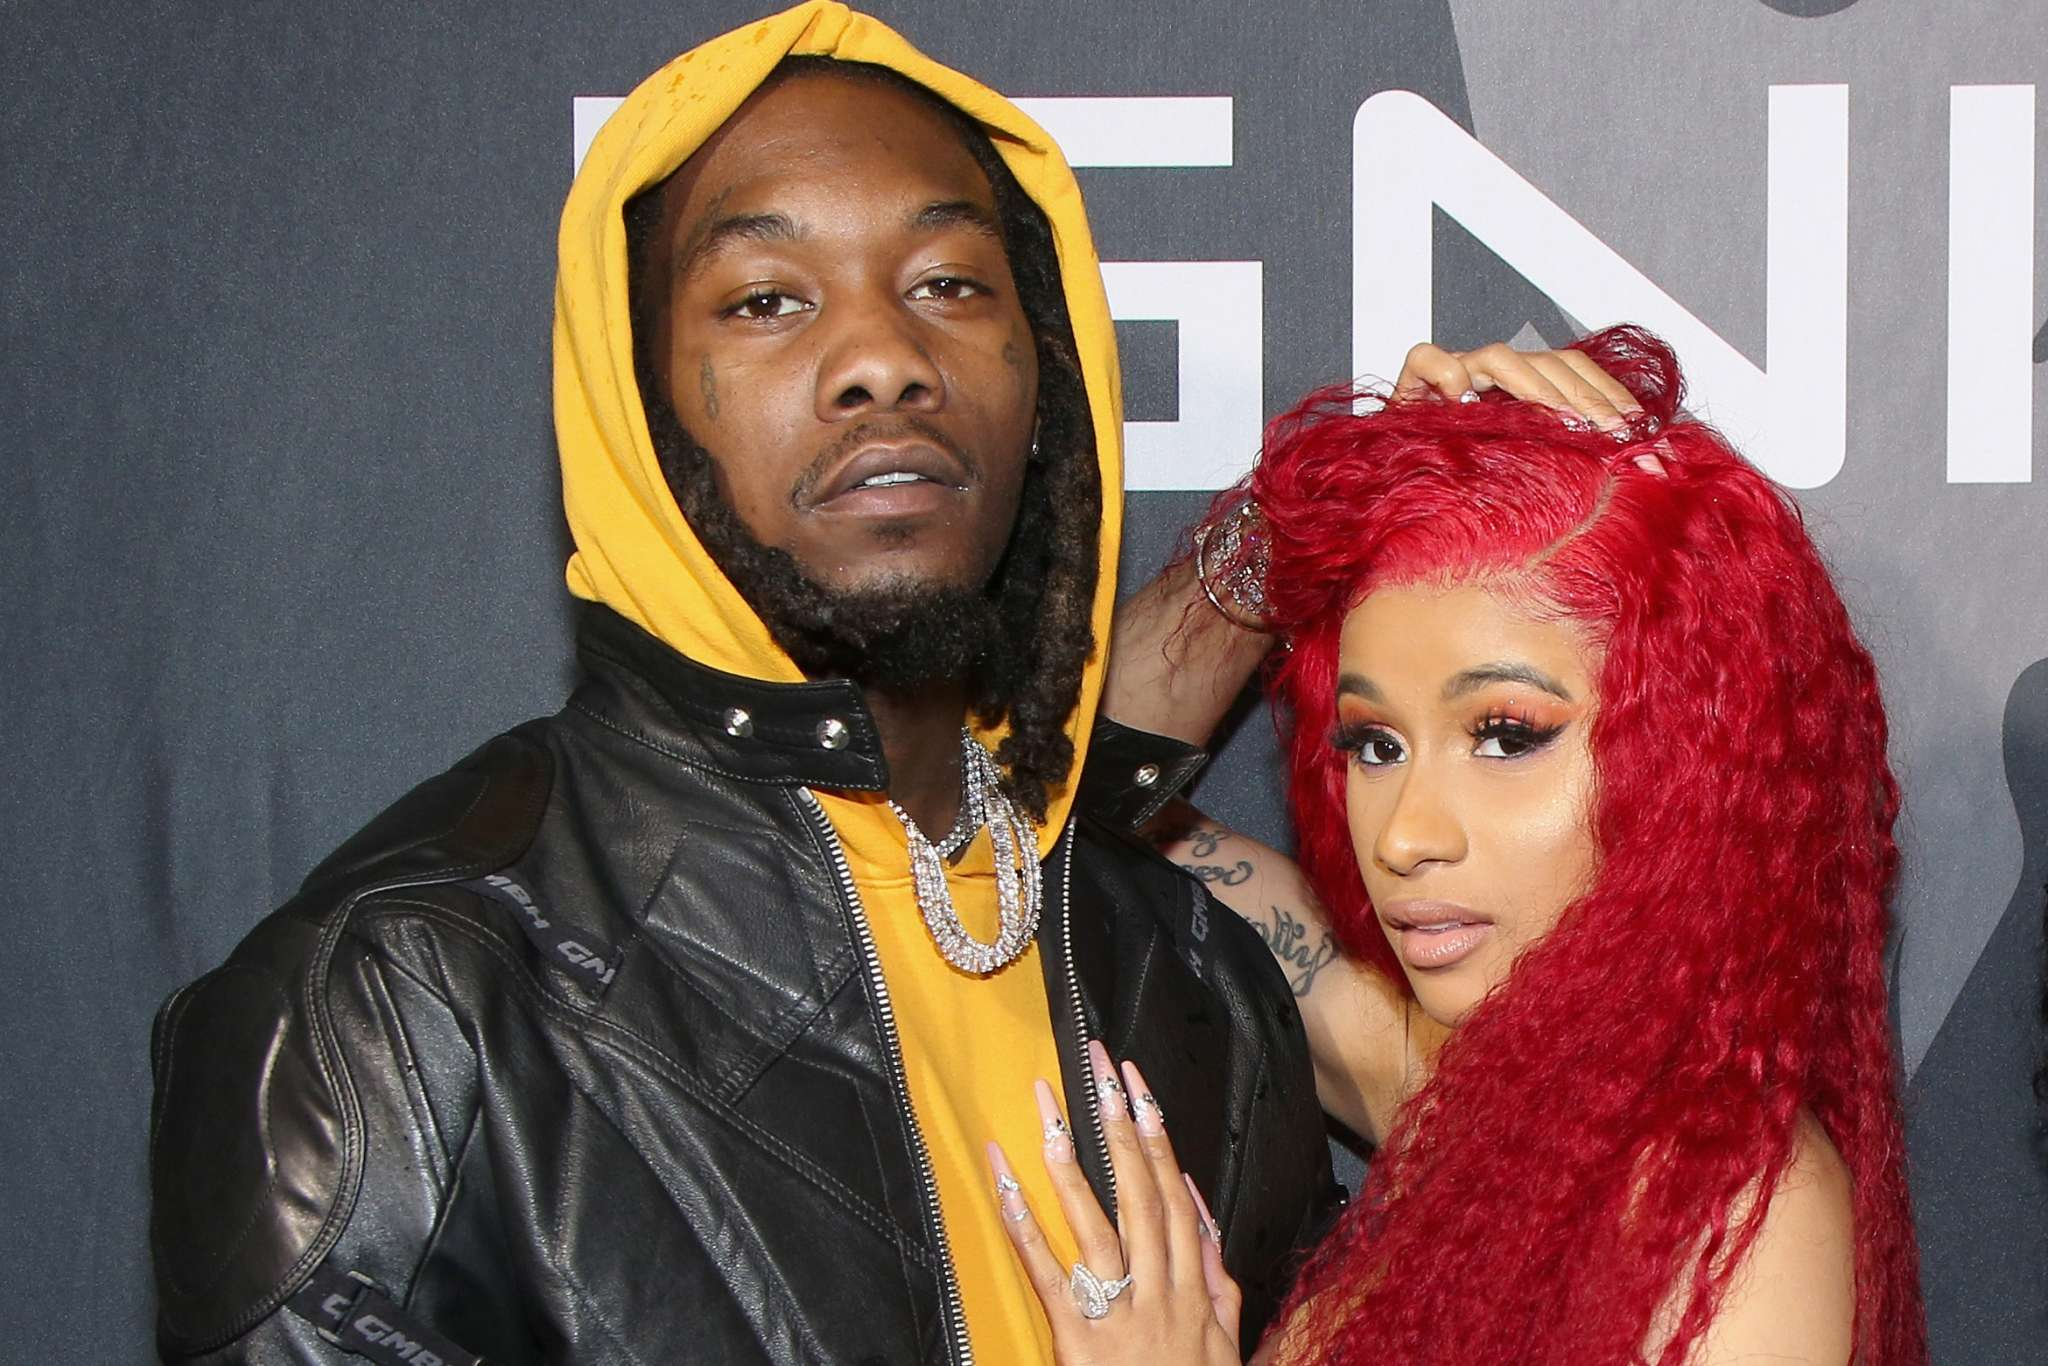 Offset Tells Ellen DeGeneres That He Doesn't Regret His Public Apology To Cardi B - See The Video